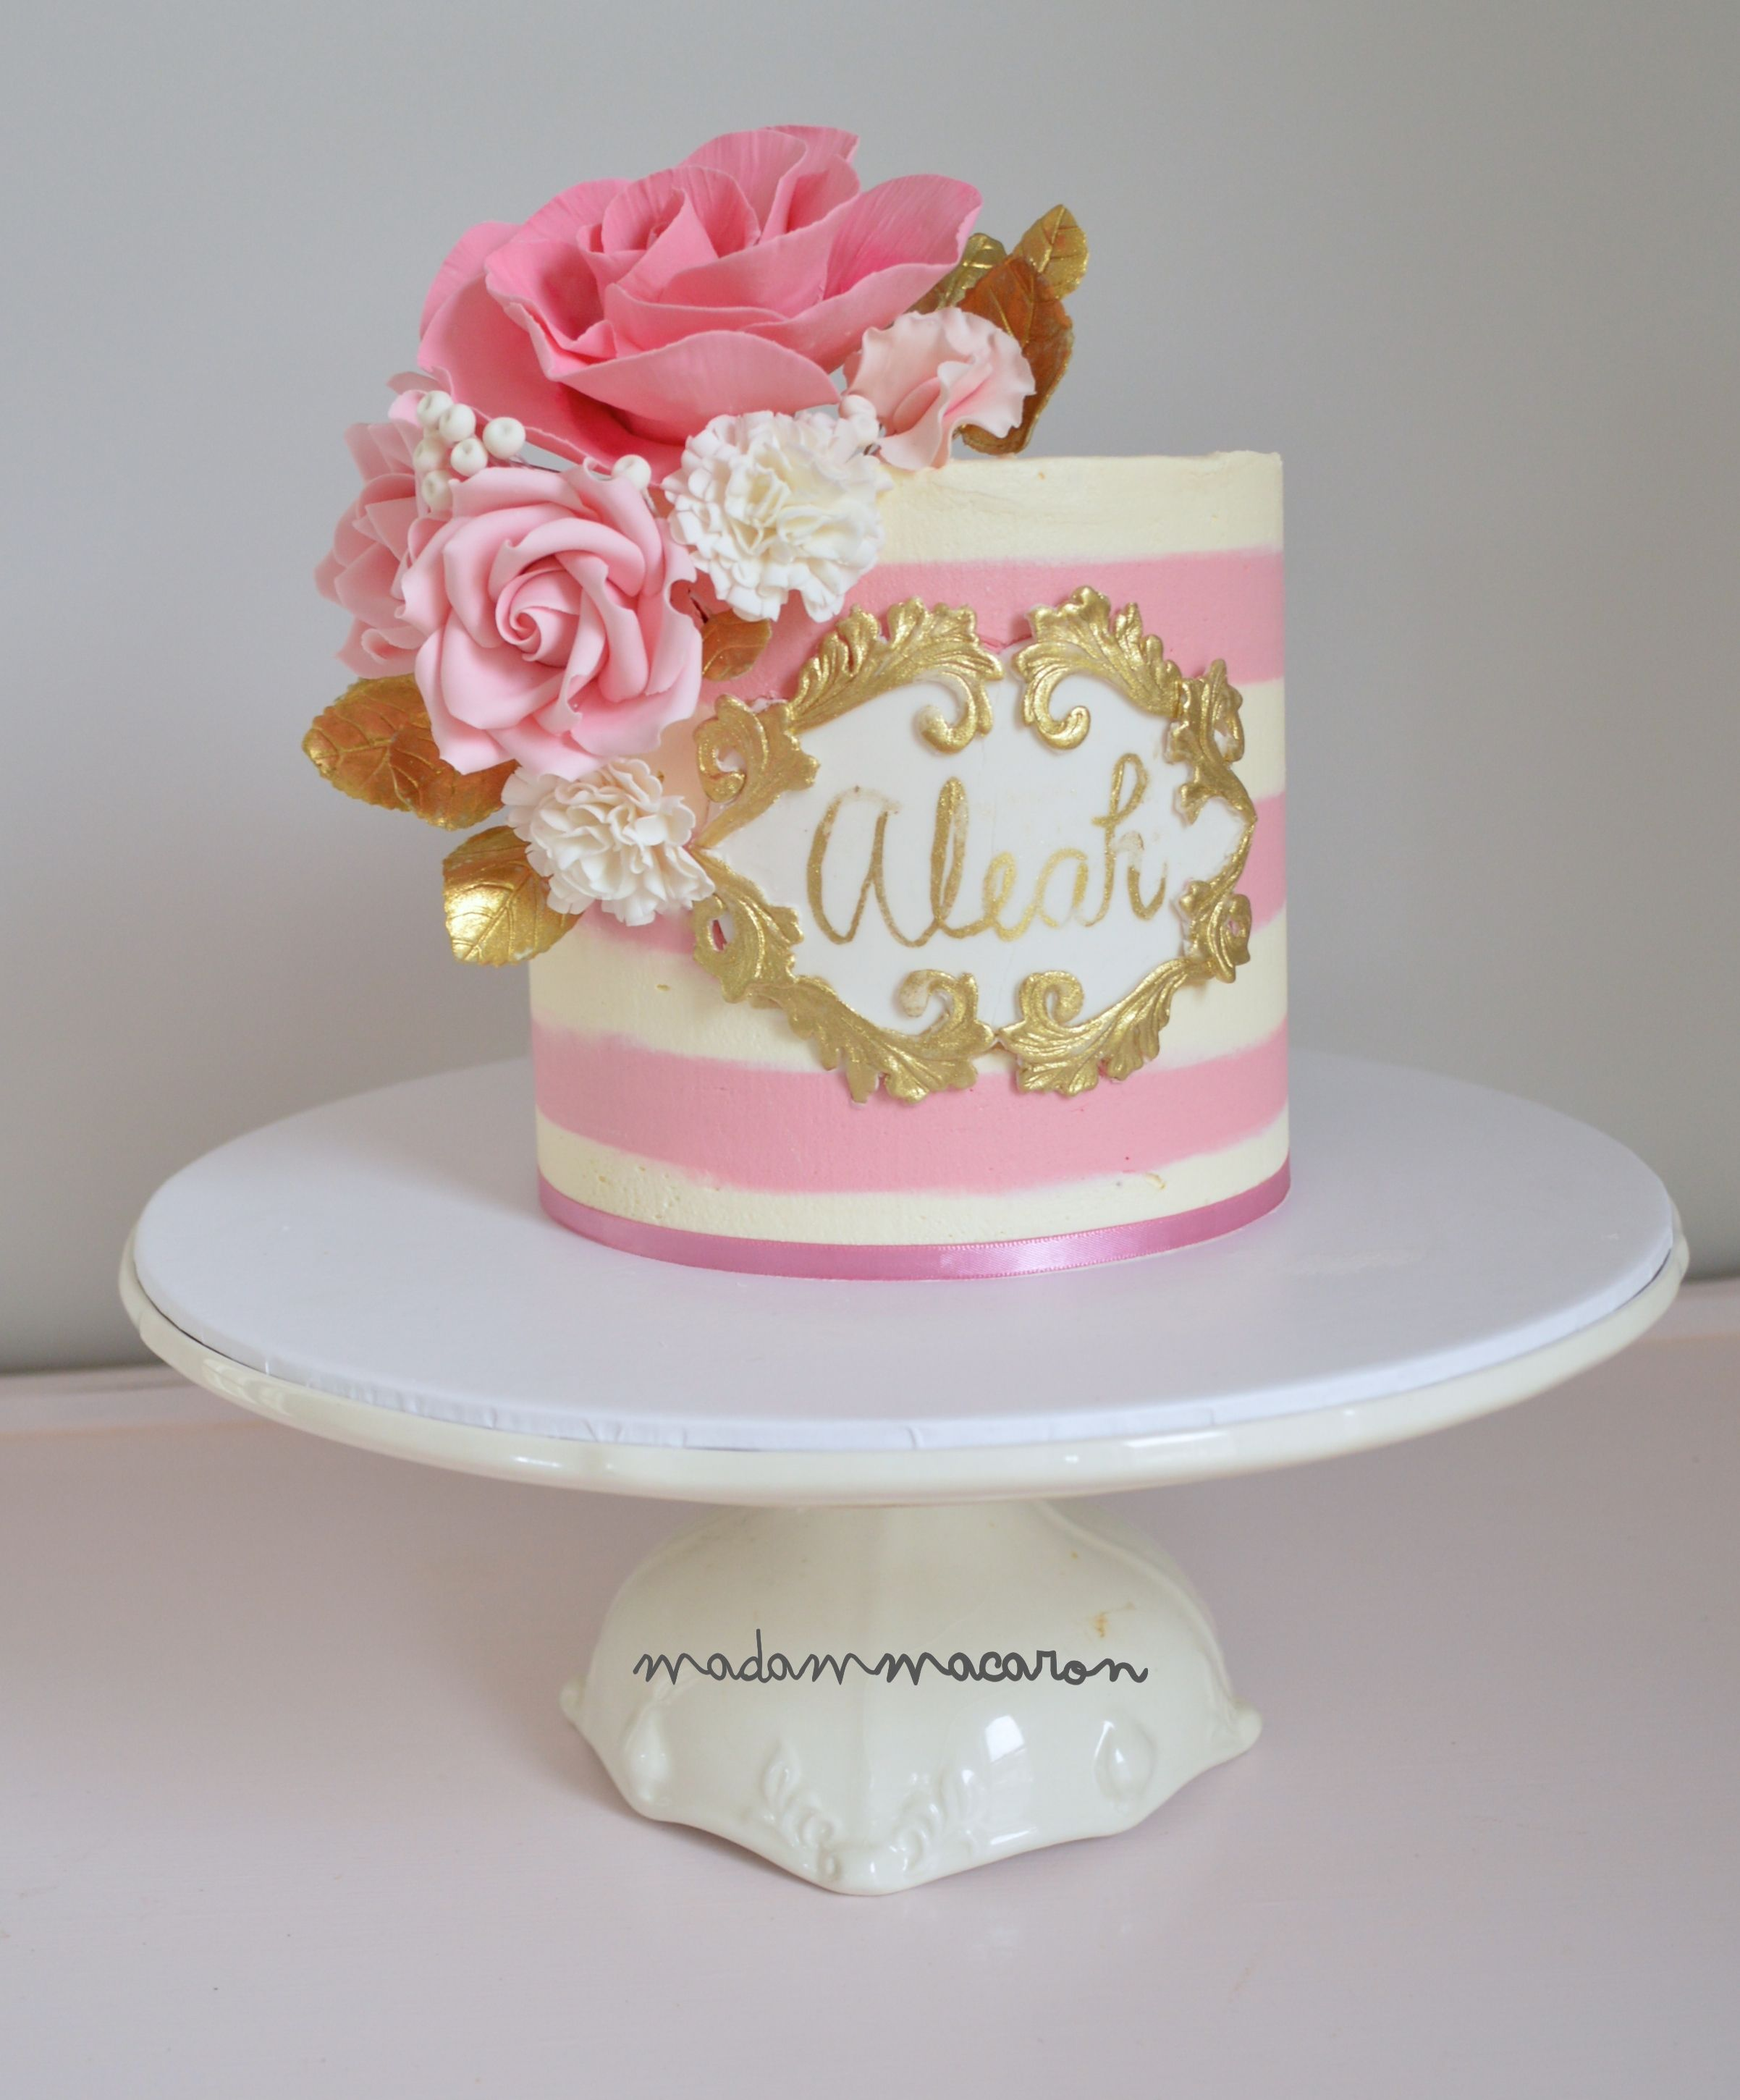 Kuchen Deko Name White And Pink Buttercream Striped Cake With A Hand Painted Name